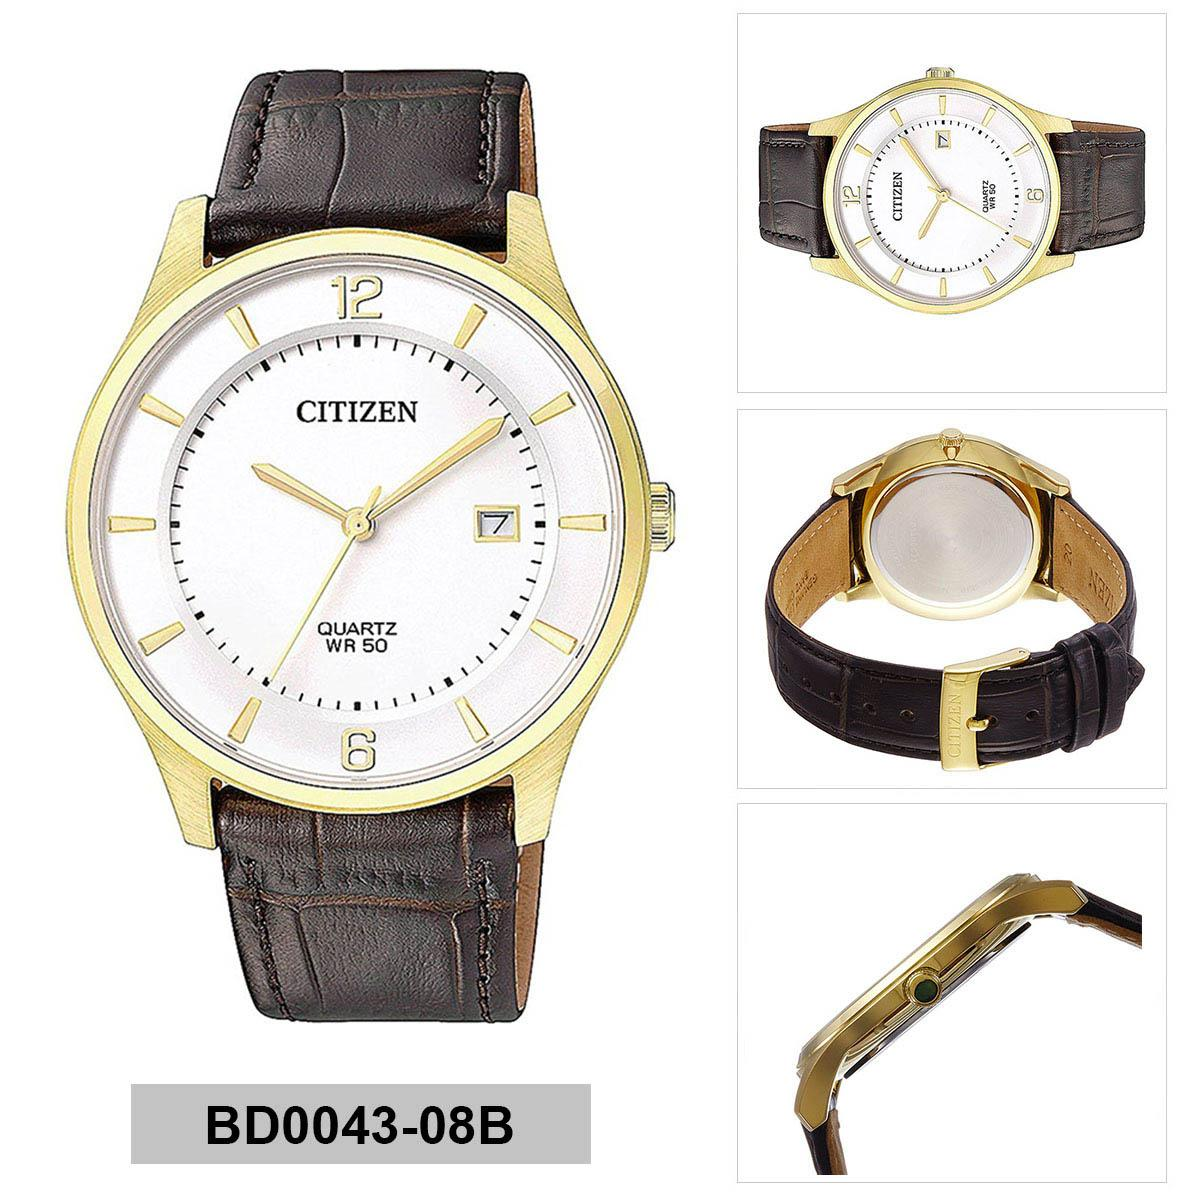 Citizen Citizen WR 50 Brown Stainless-Steel Case Leather Strap Mens NWT + Warranty BD0043-08B